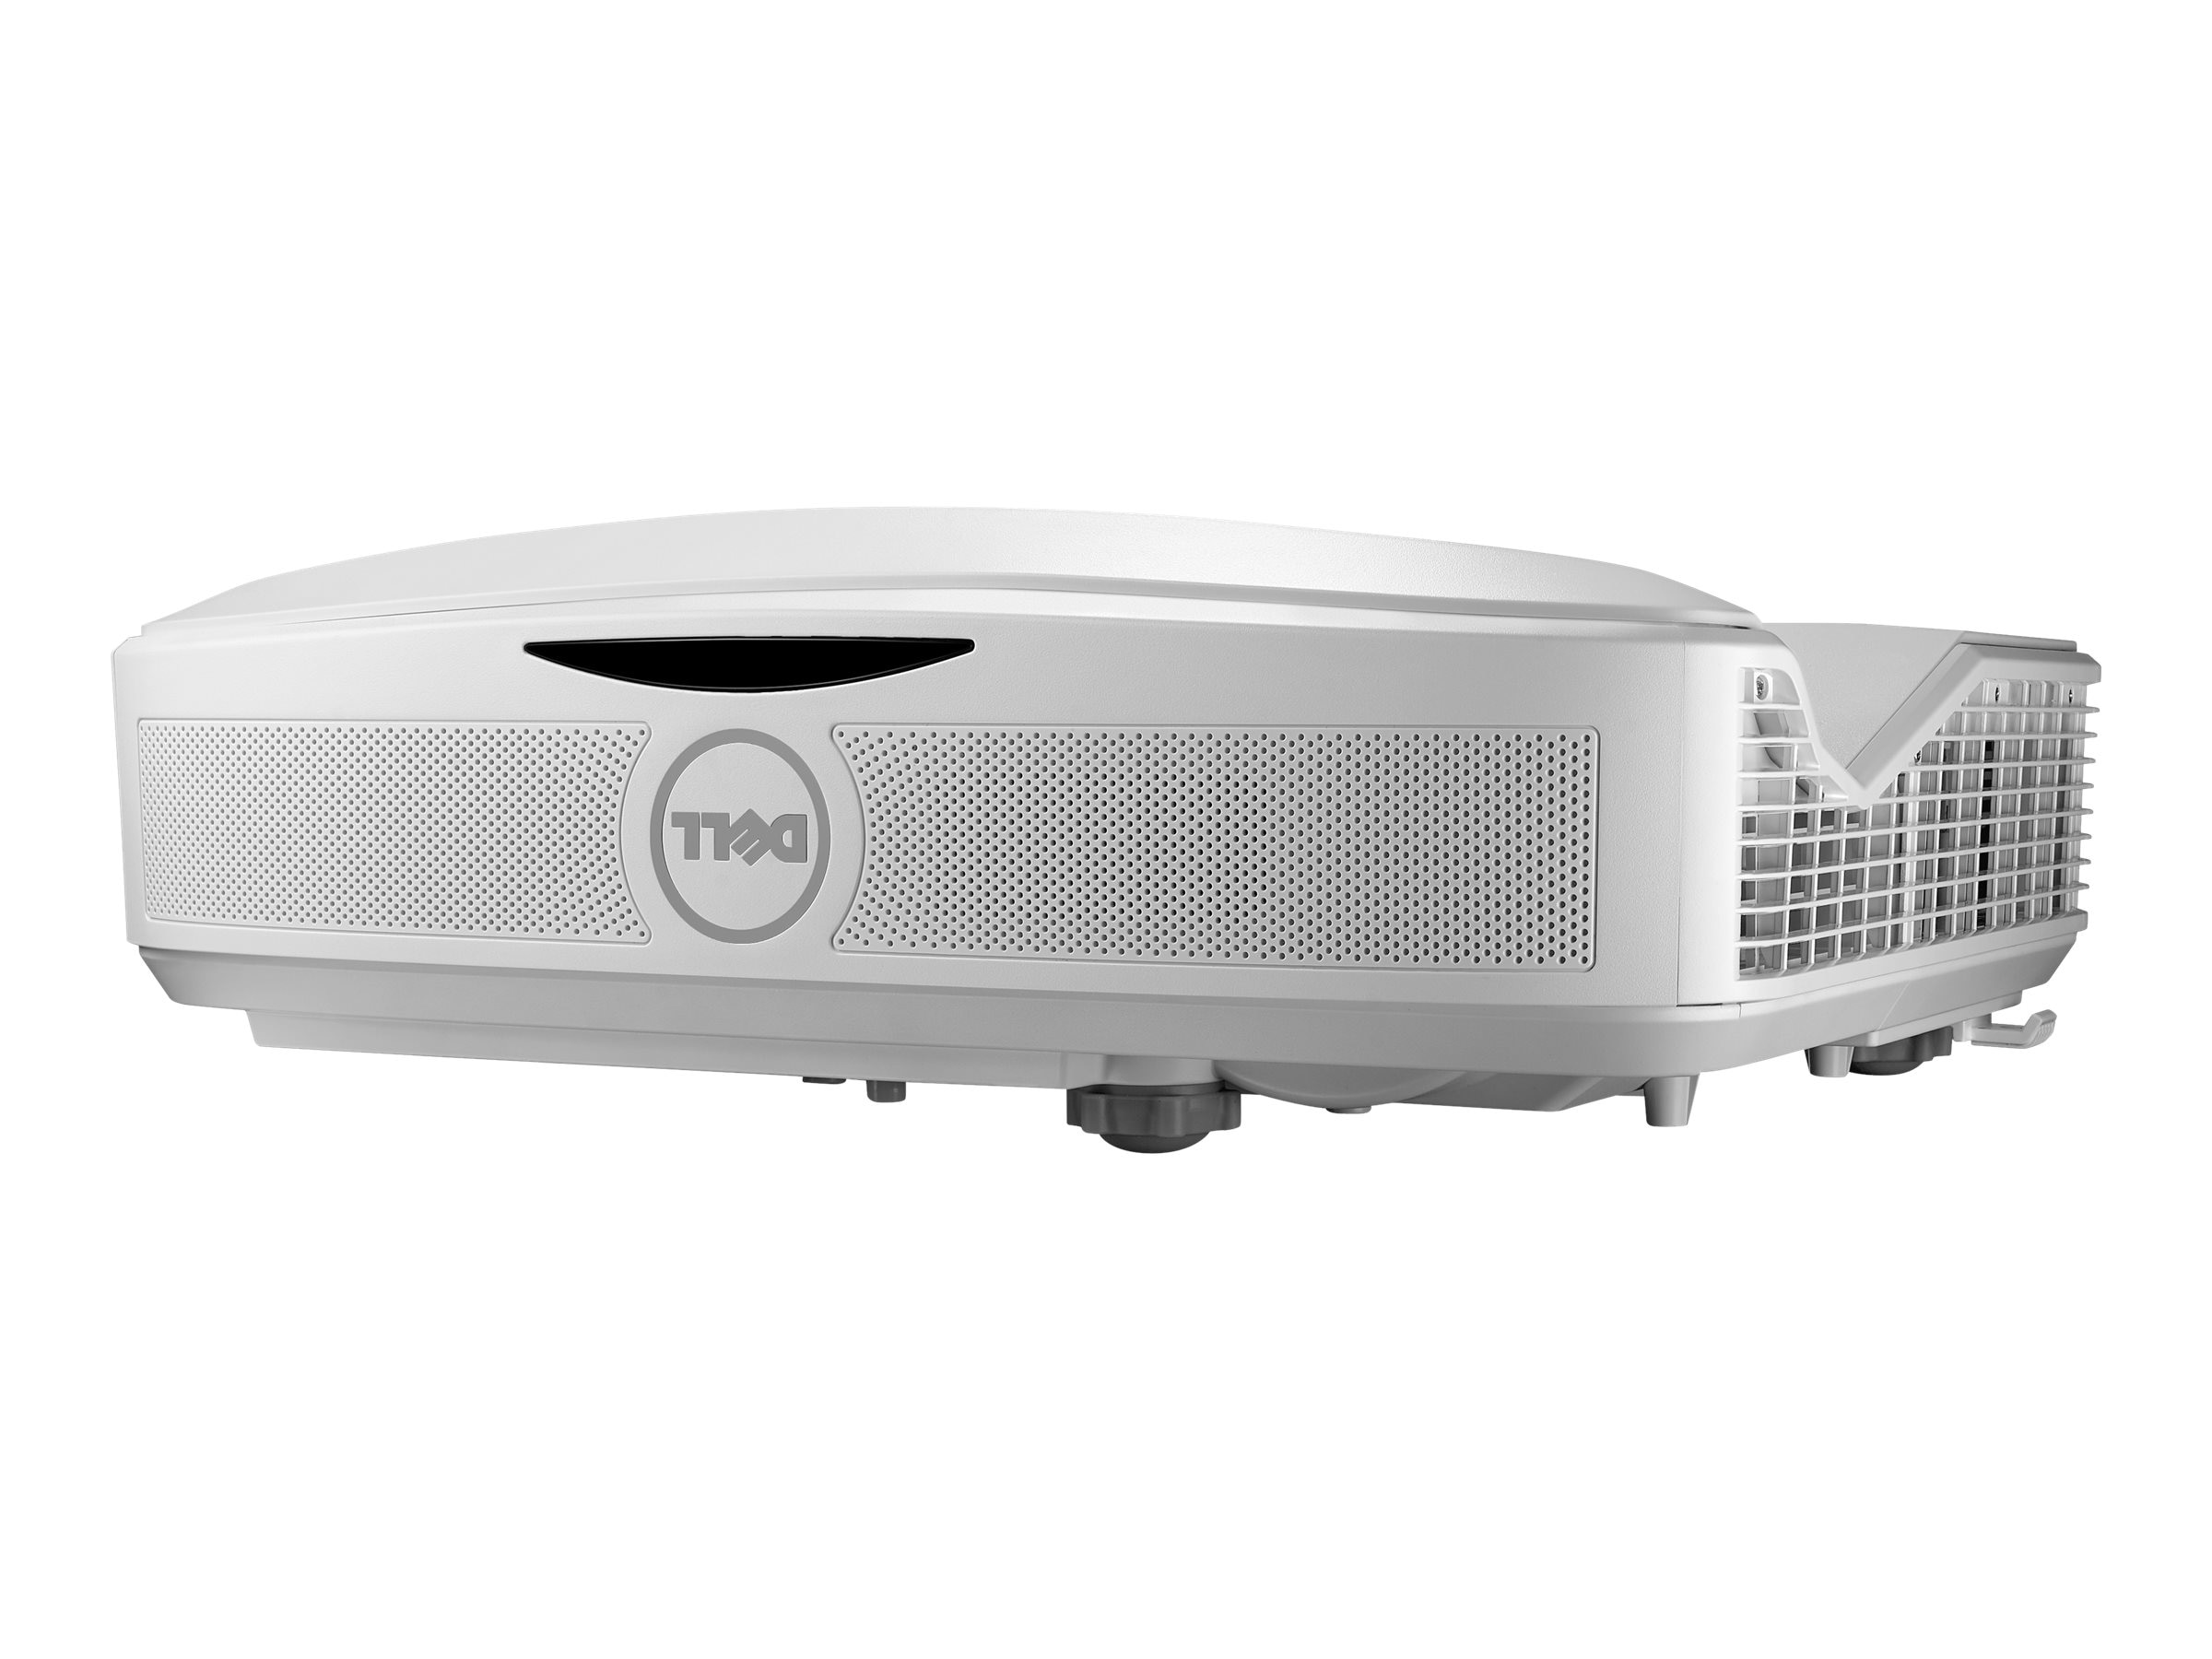 Dell S560T 1080p DLP Projector with Speakers, 3400 Lumens, White, S560T